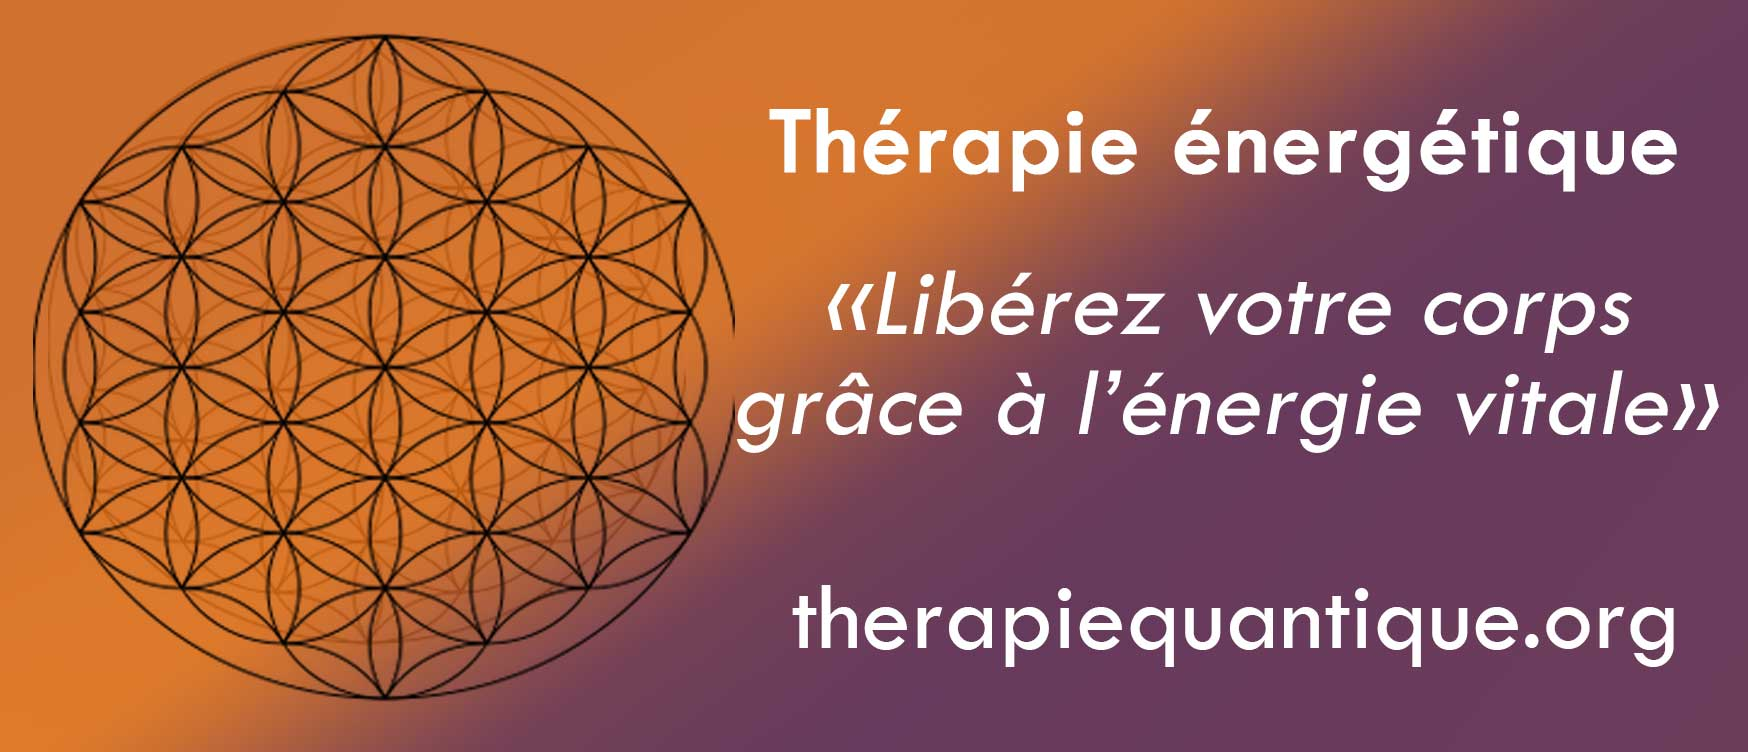 banniere-therapie-quantique